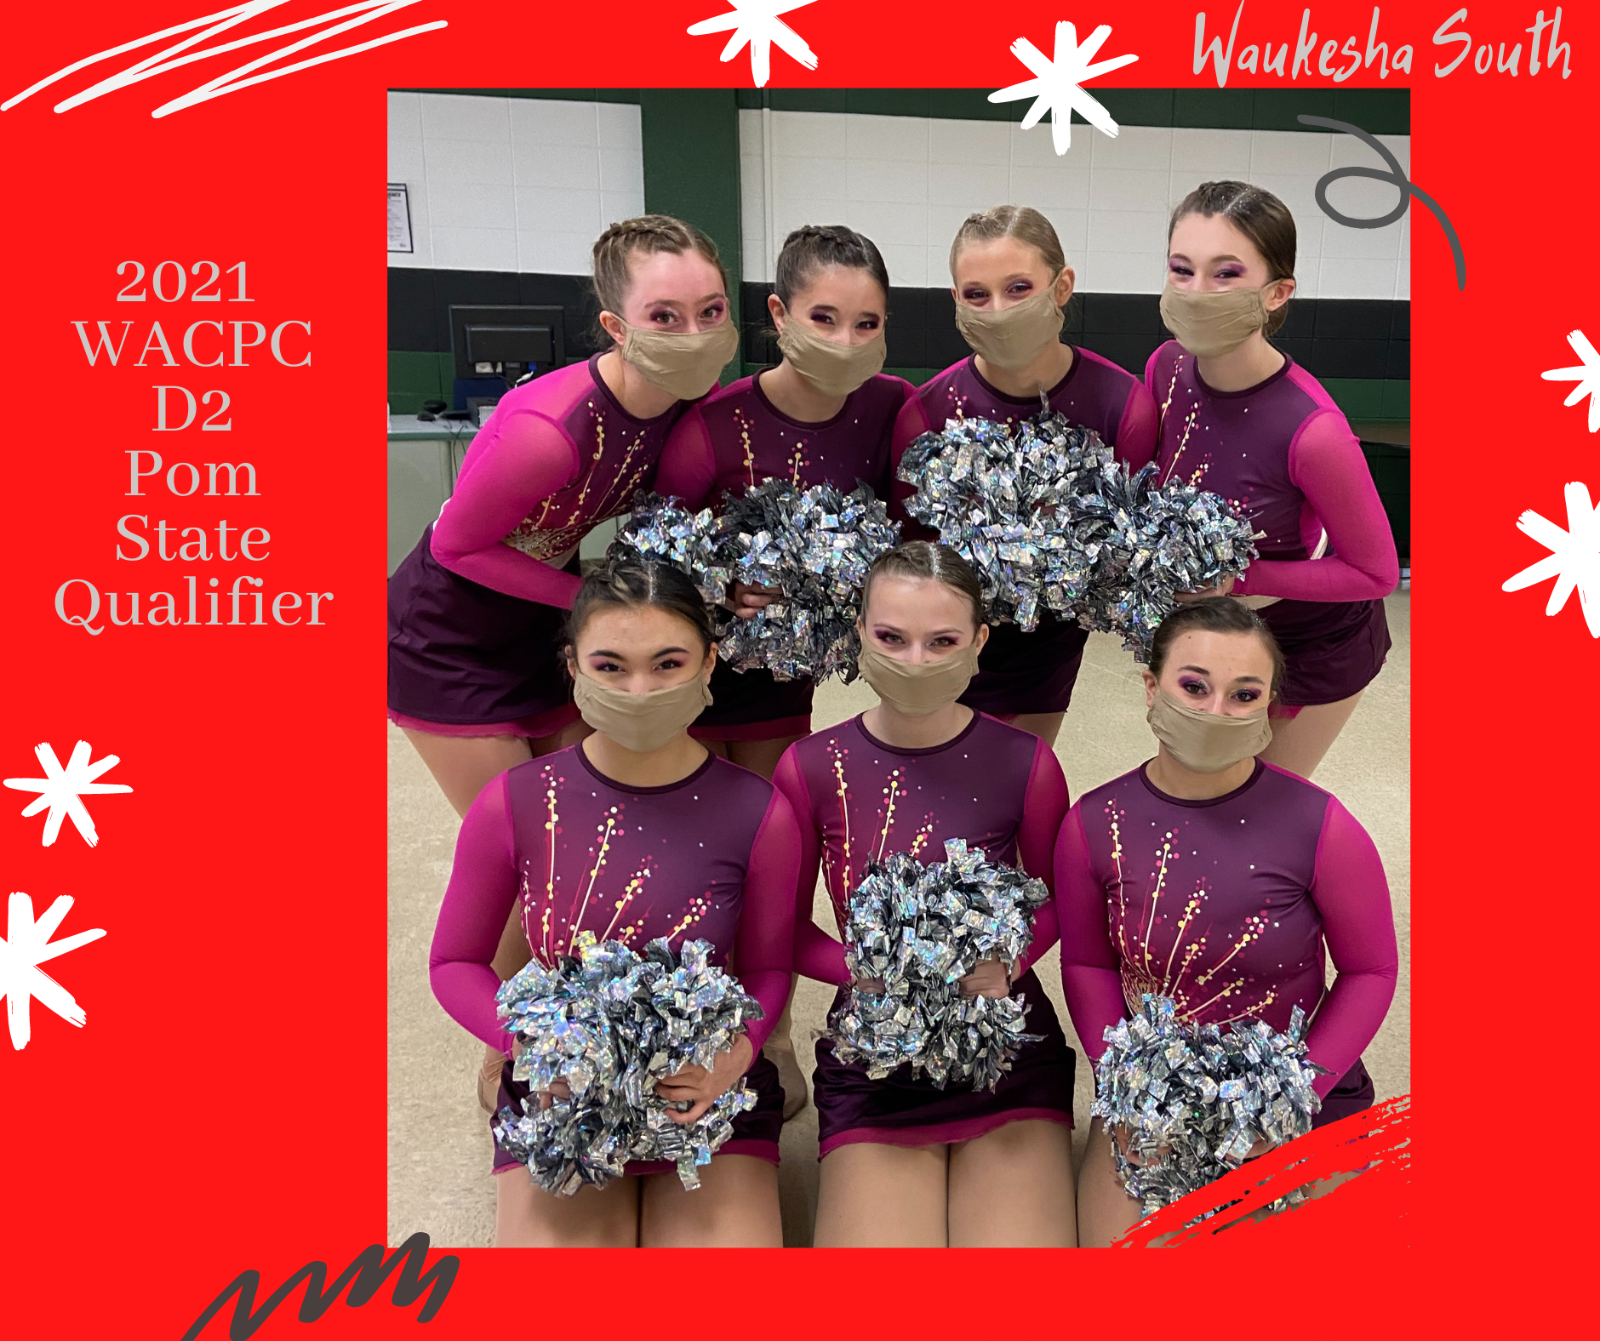 Waukesha South Dance Qualifies for State!